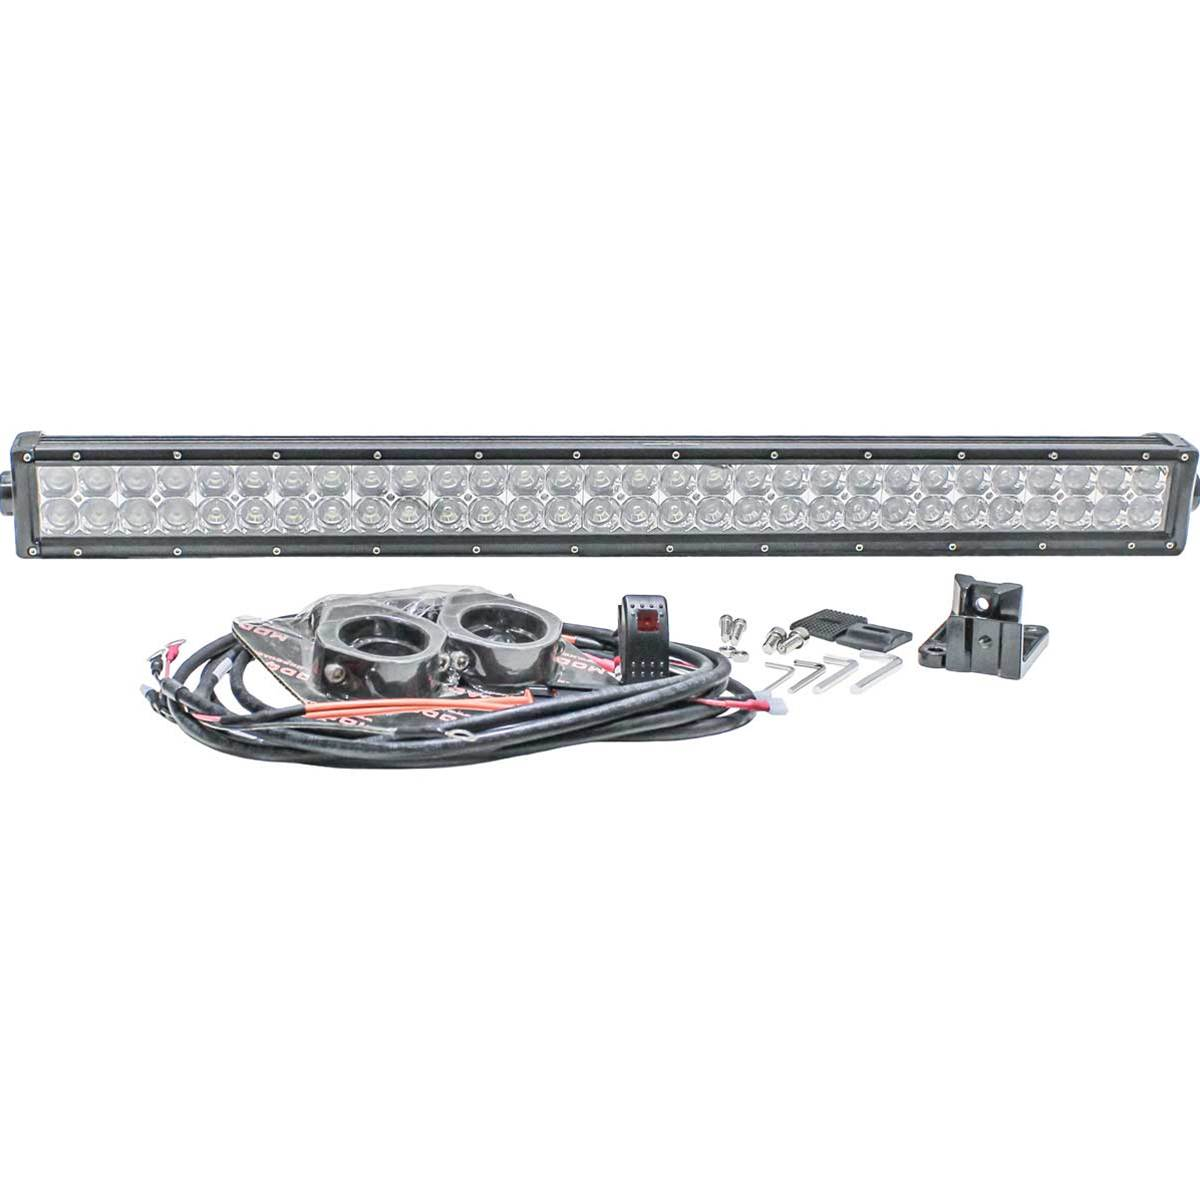 "Polaris RZR 900/1000 LED 30"" Light Bar Kit"